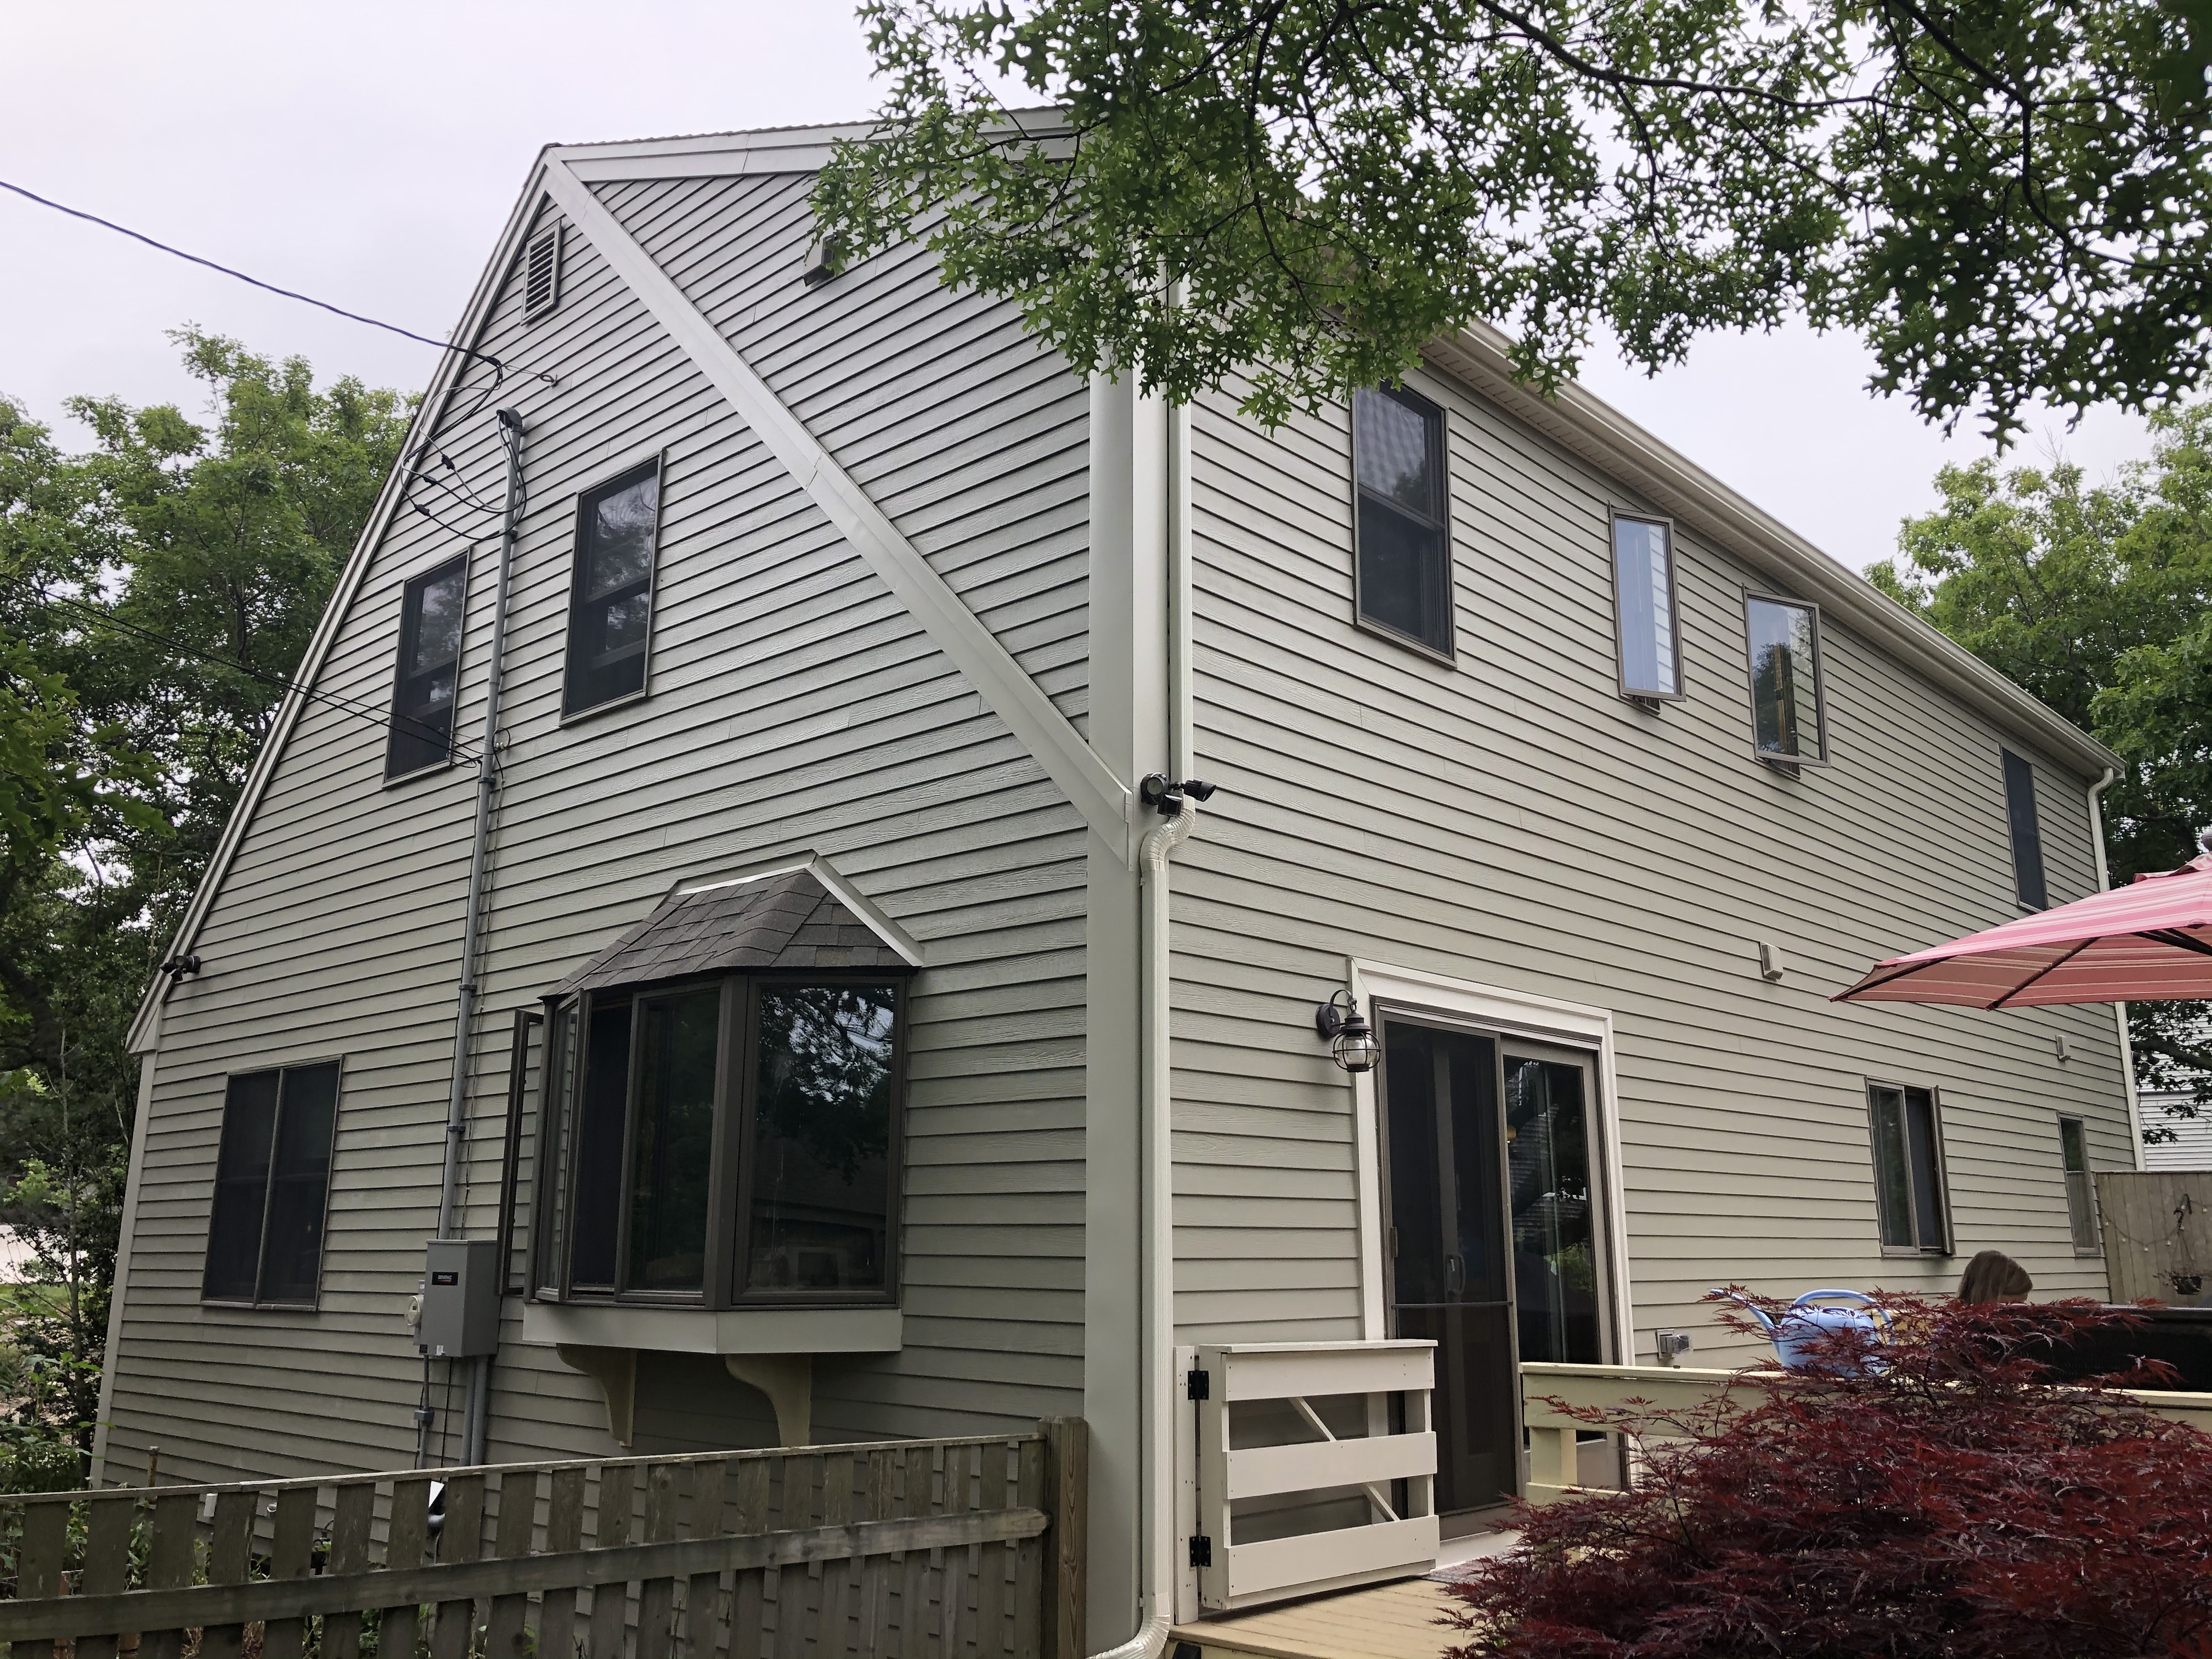 Beantown James Hardie Siding